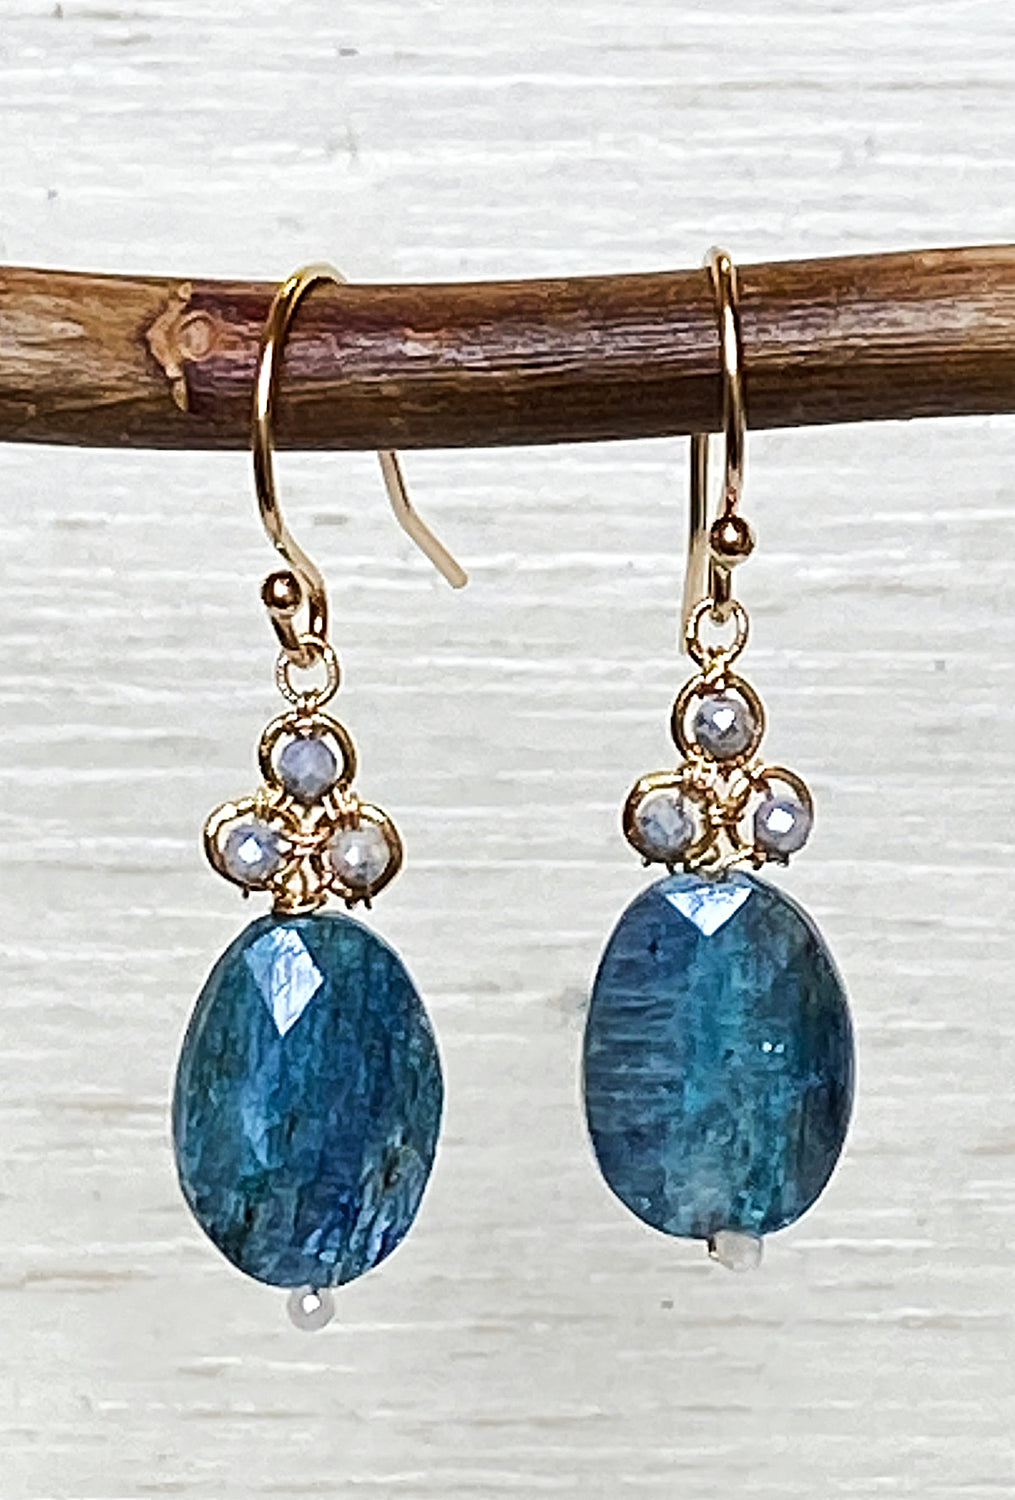 Michelle Pressler Silverlight/Blue Kyanite Ear